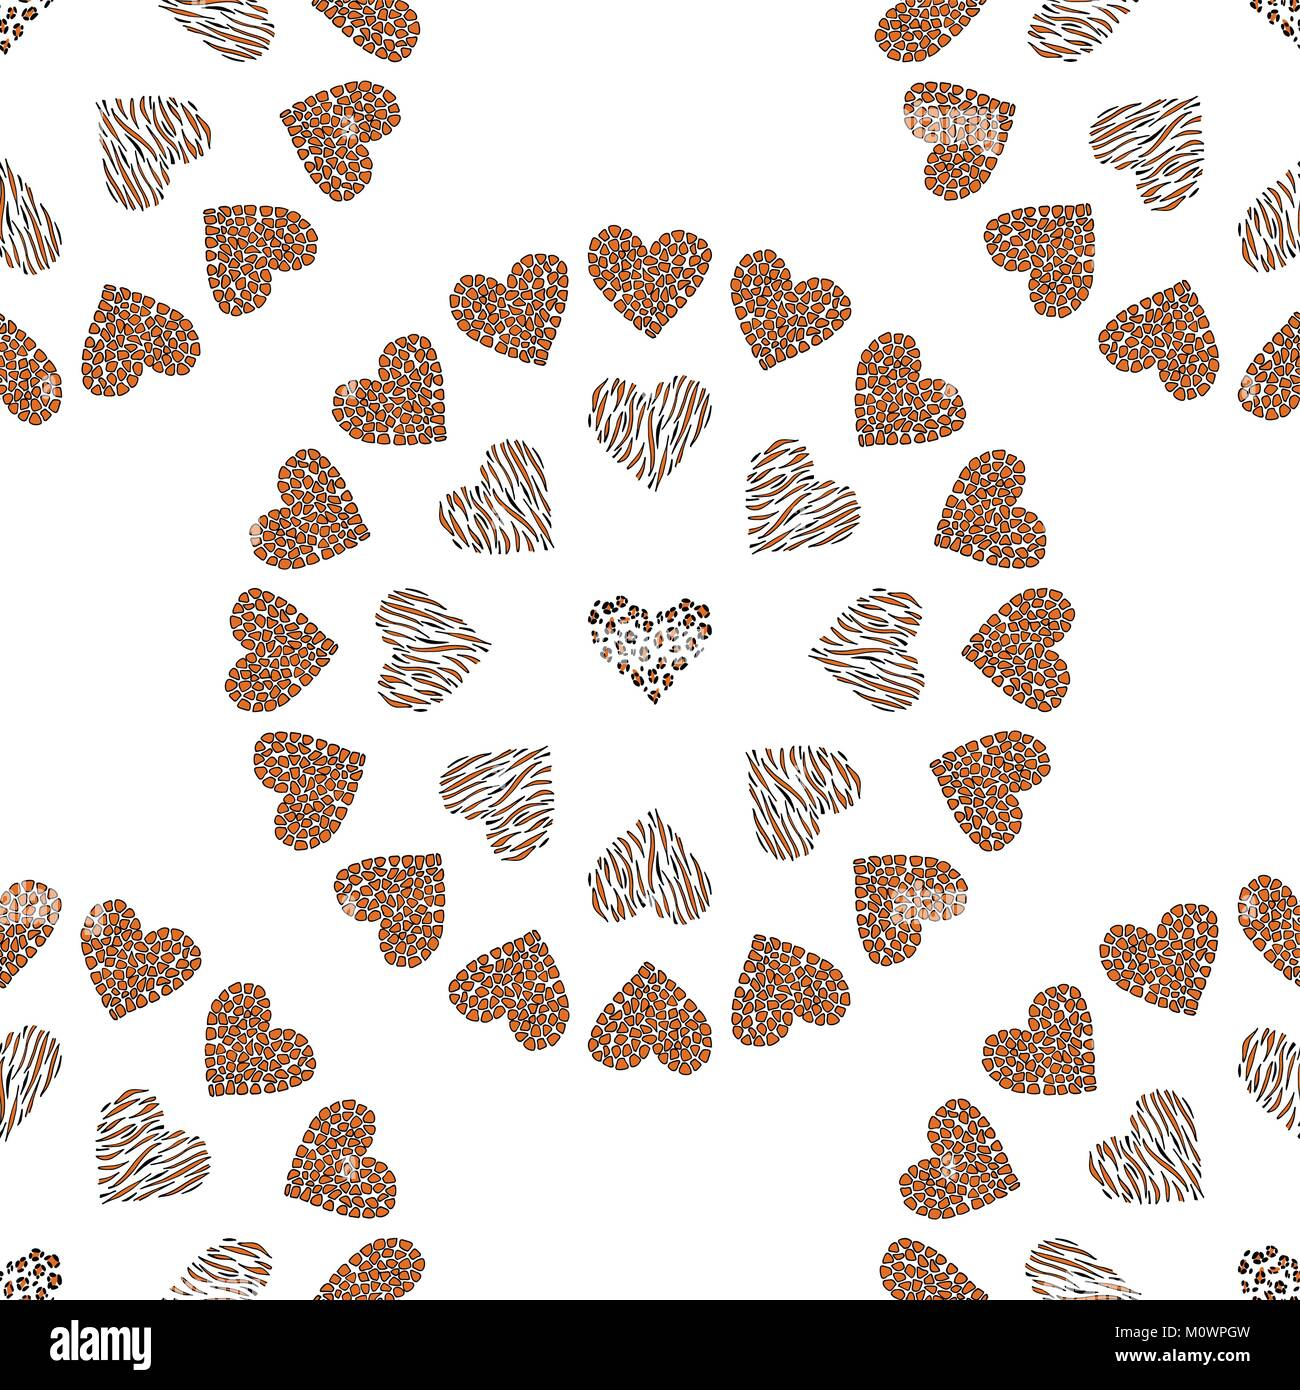 Seamless pattern background with wild heart. - Stock Image